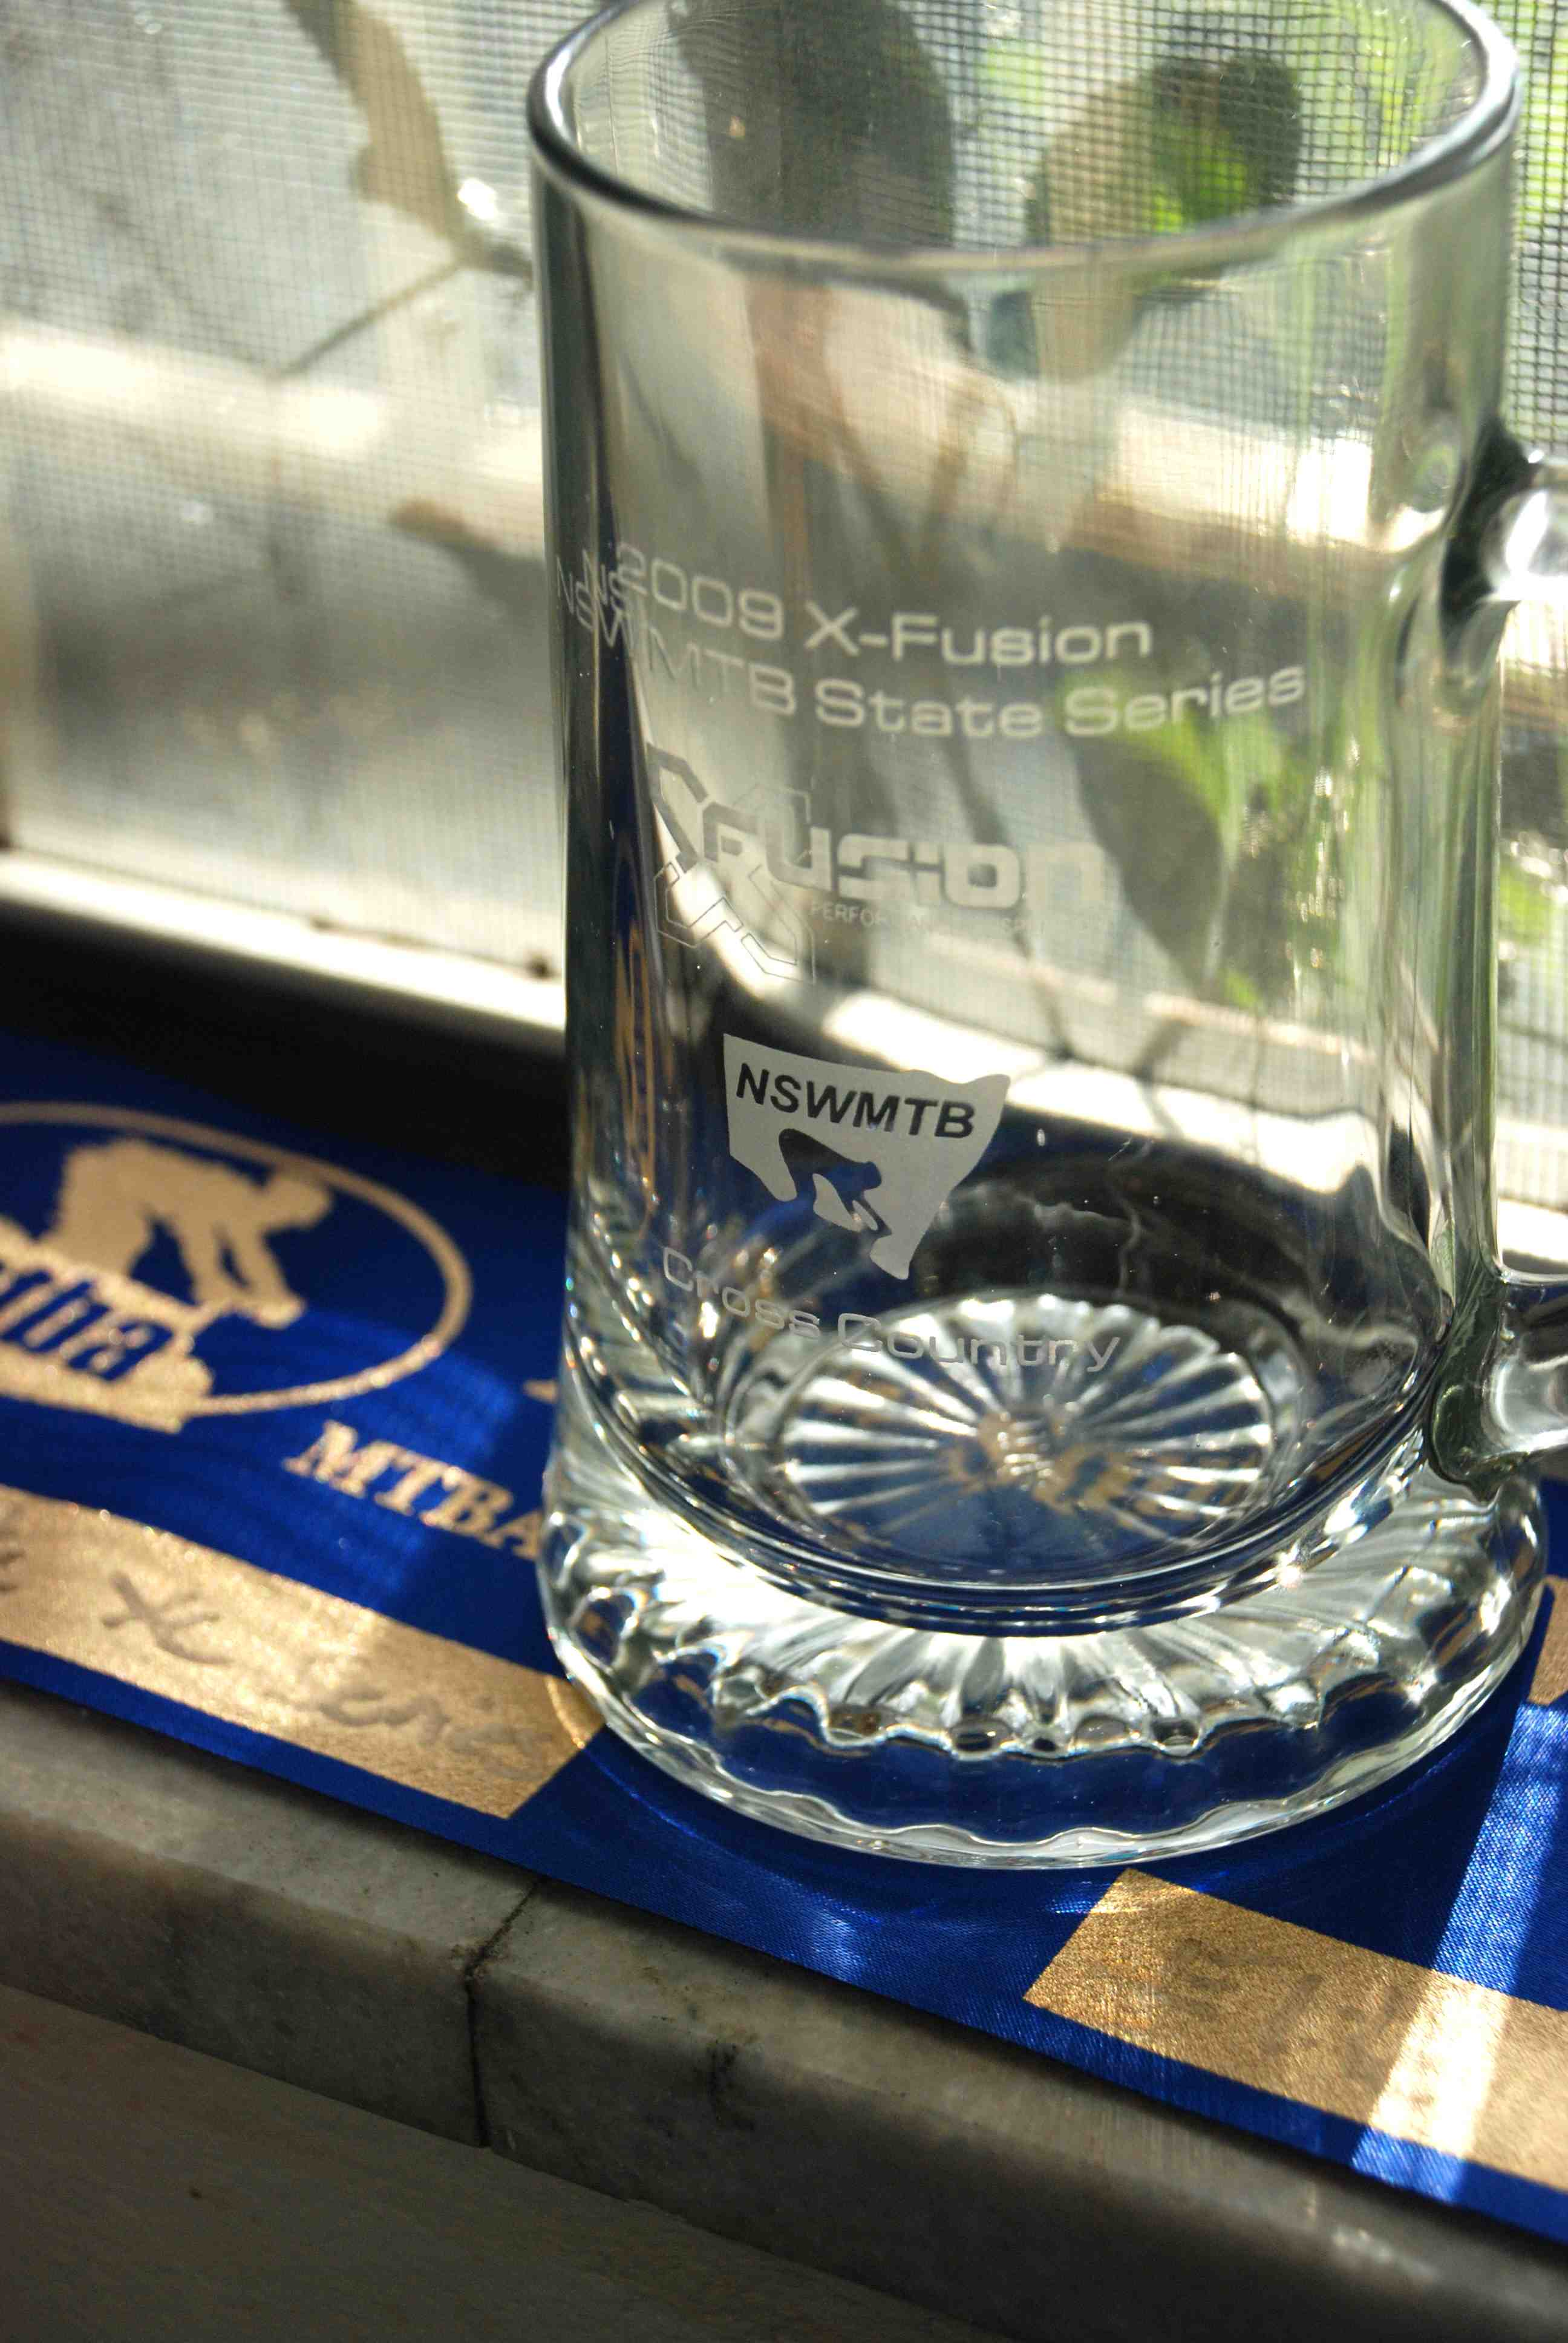 The series beer glass is going straight to the pool room...or, erm, the terrace house window cill.